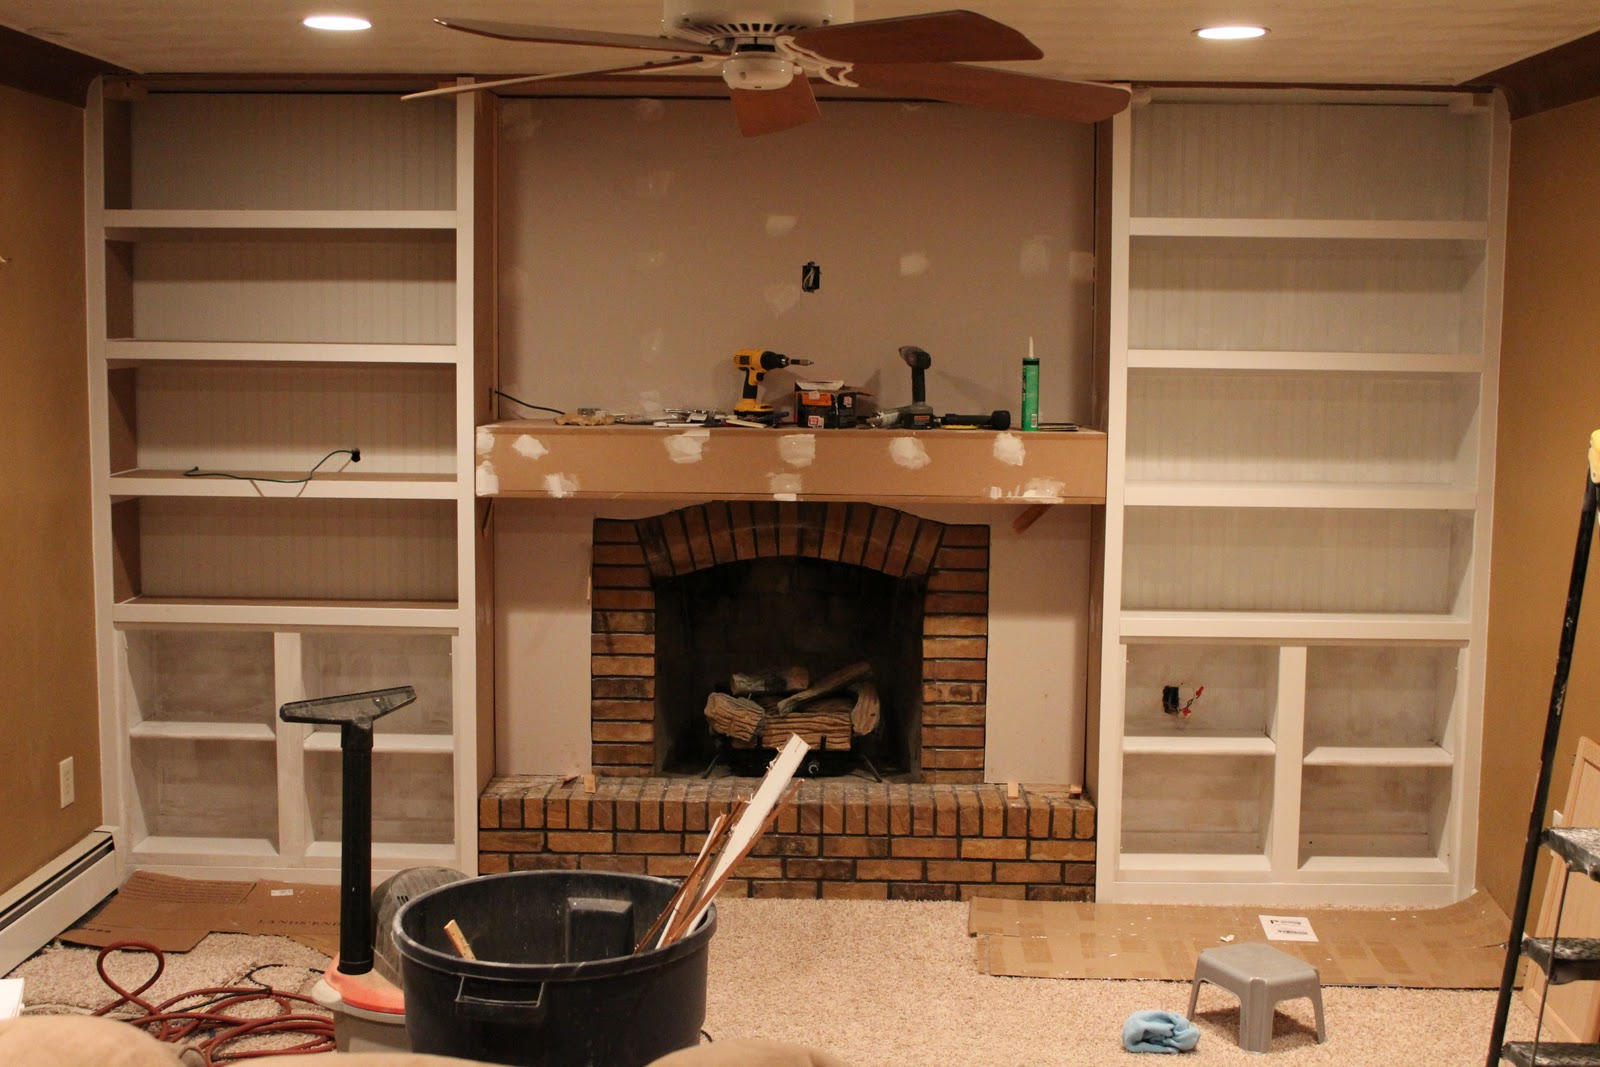 Elegant Fireplace Makeover With Builtins Made From Stock Cabinetry (1)